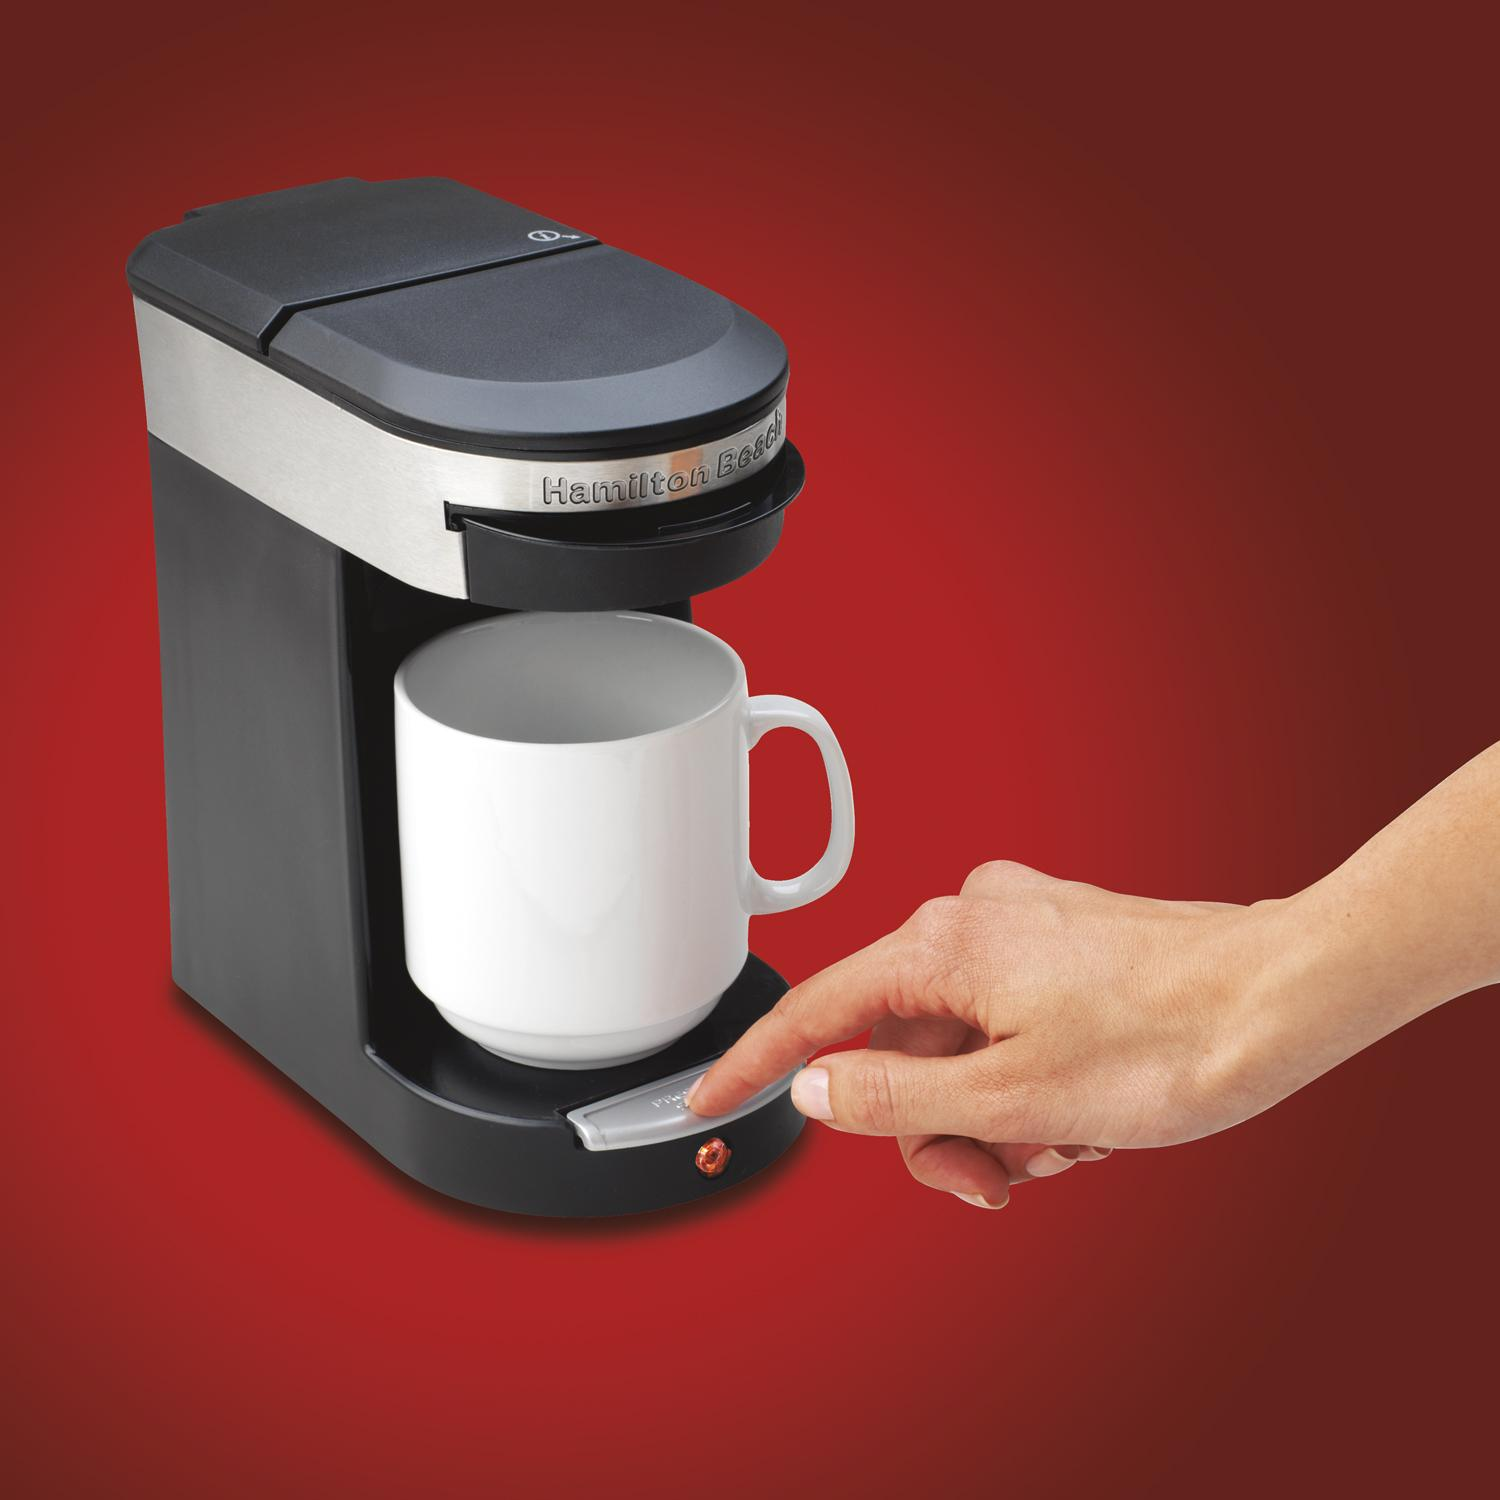 Coffee Maker Cooking Hacks : Amazon.com: Hamilton Beach 49970 Personal Cup One Cup Pod Brewer: Single Serve Brewing Machines ...